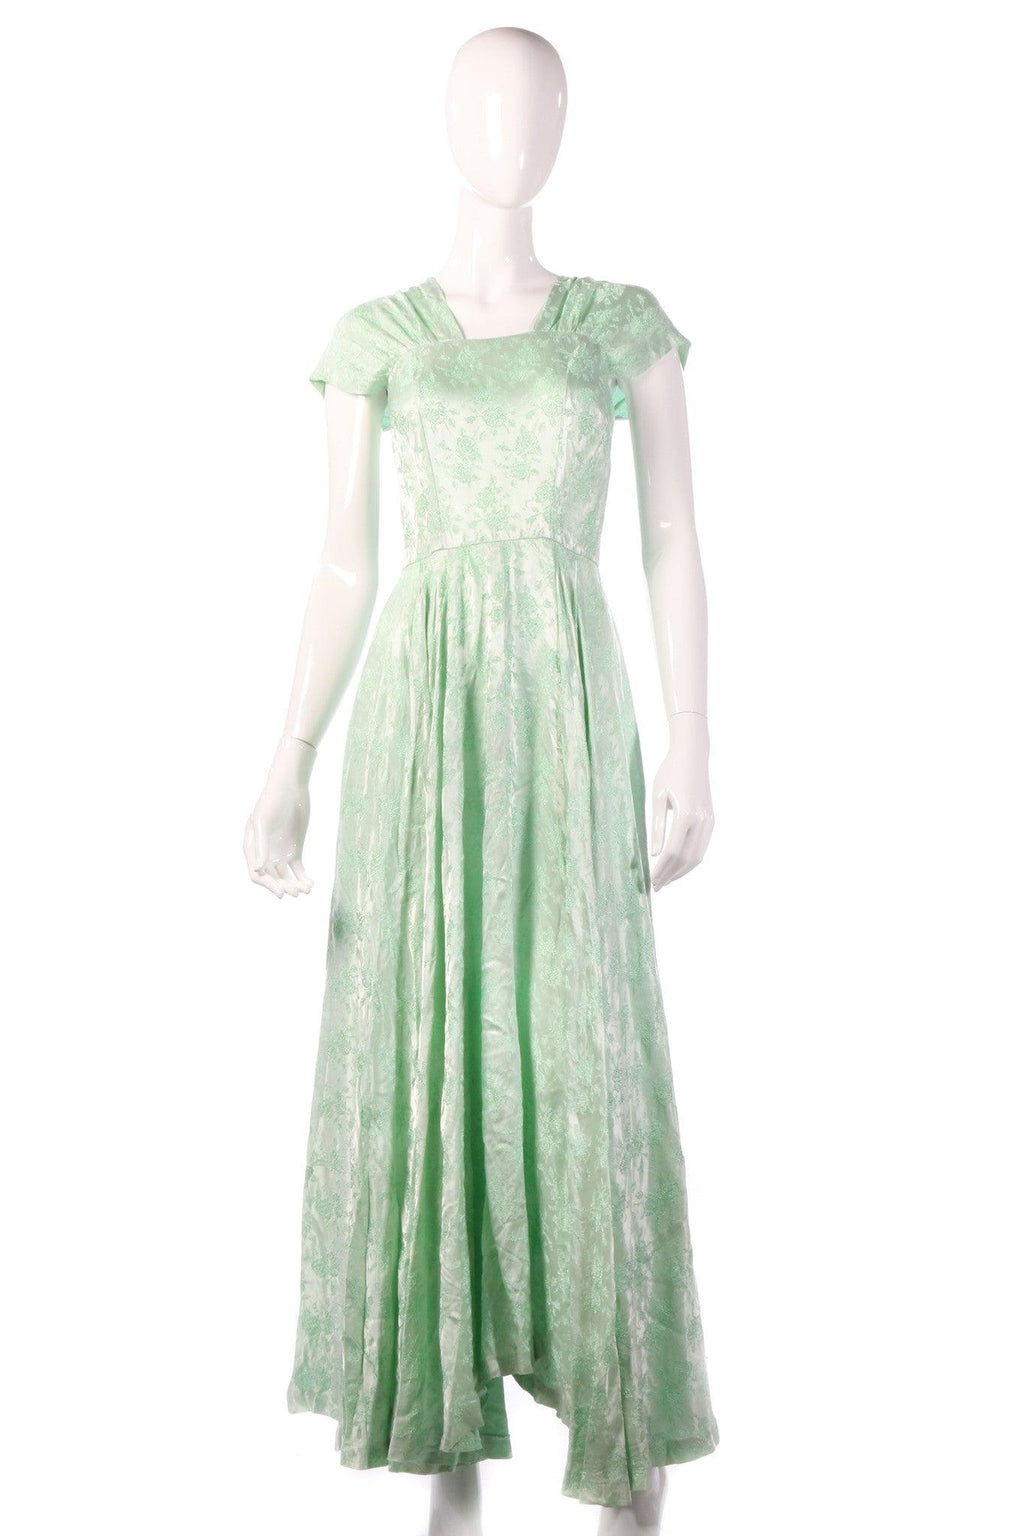 Light green floral evening dress